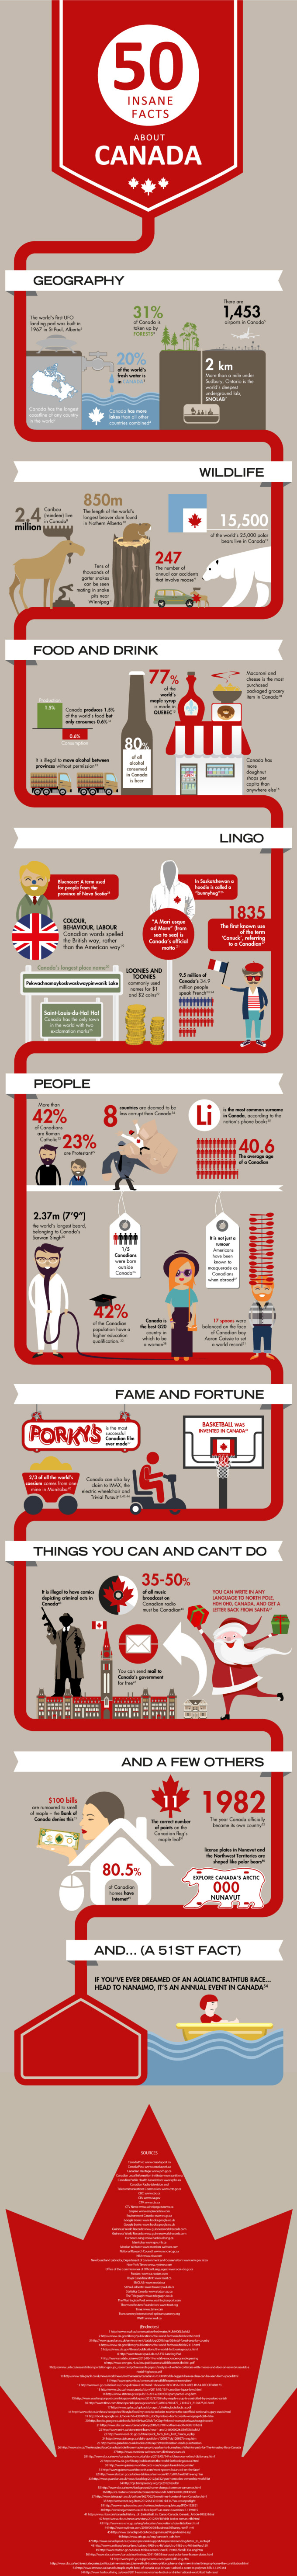 infographics 50 insane facts about canada that you did not know